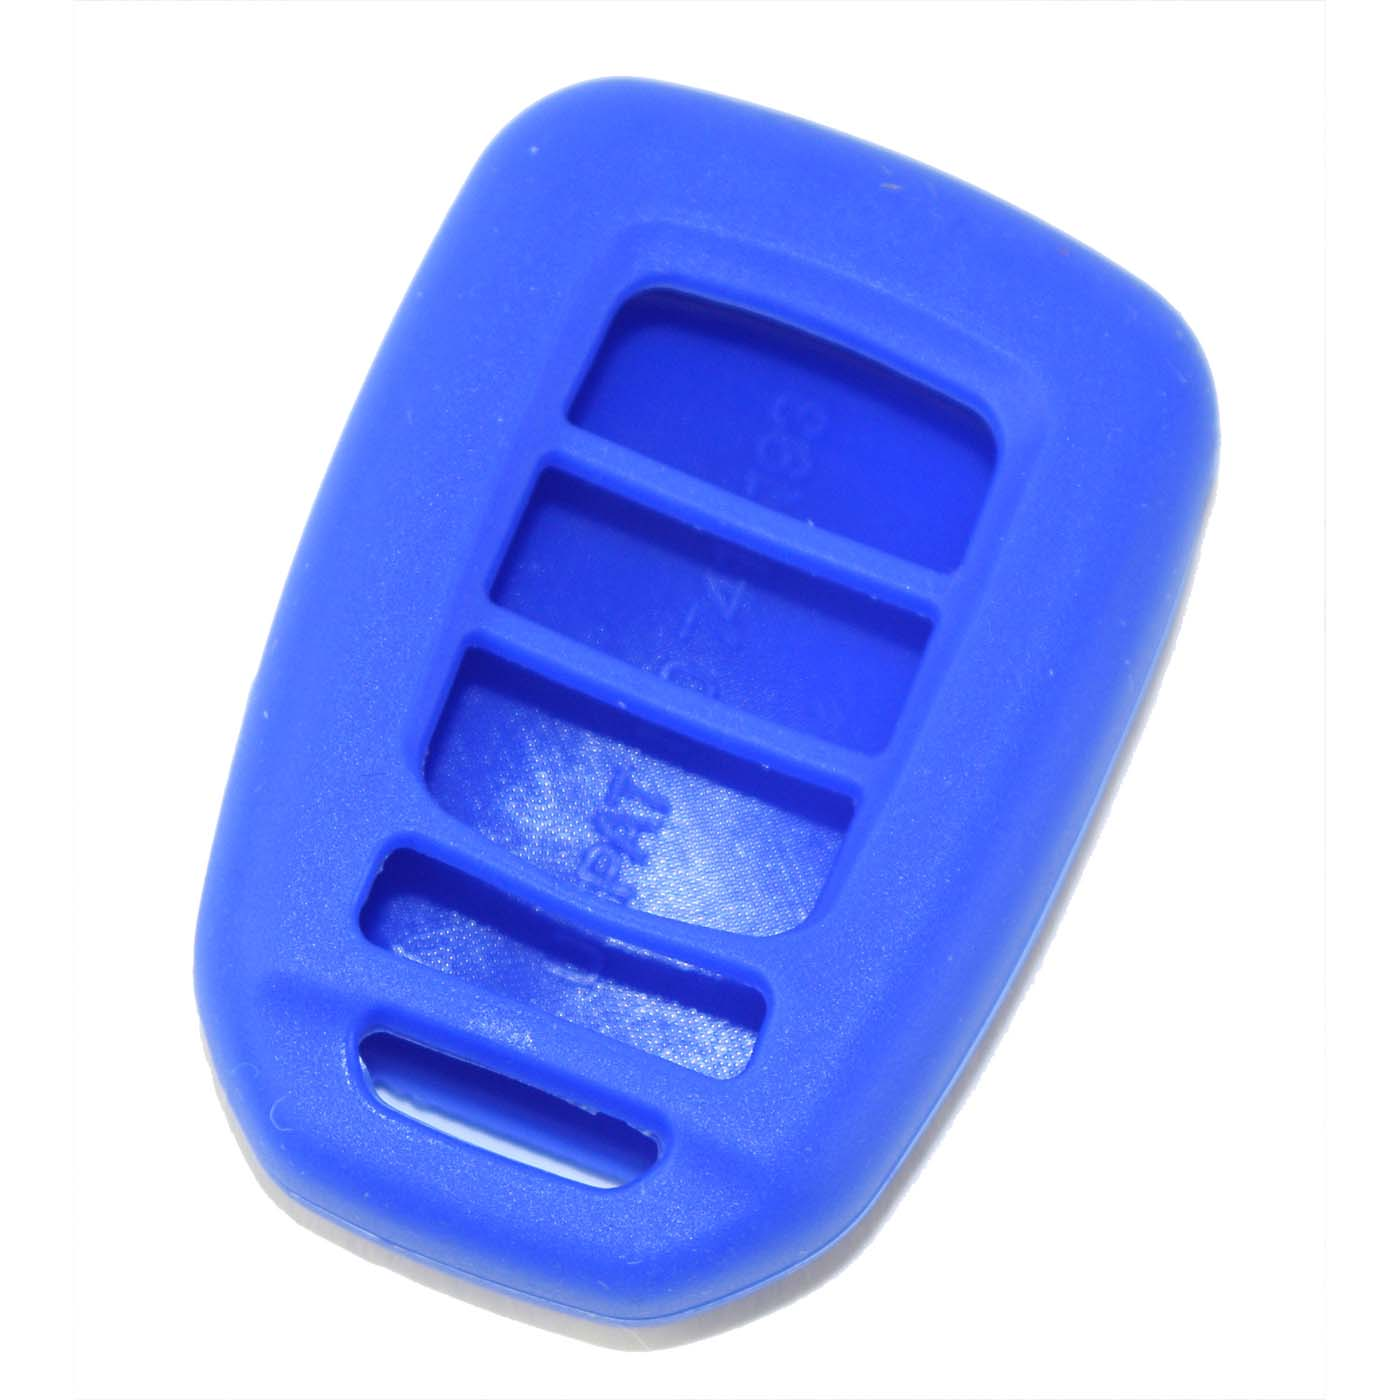 Honda Accord Silicone Rubber Remote Key Cover 2013 - 2017